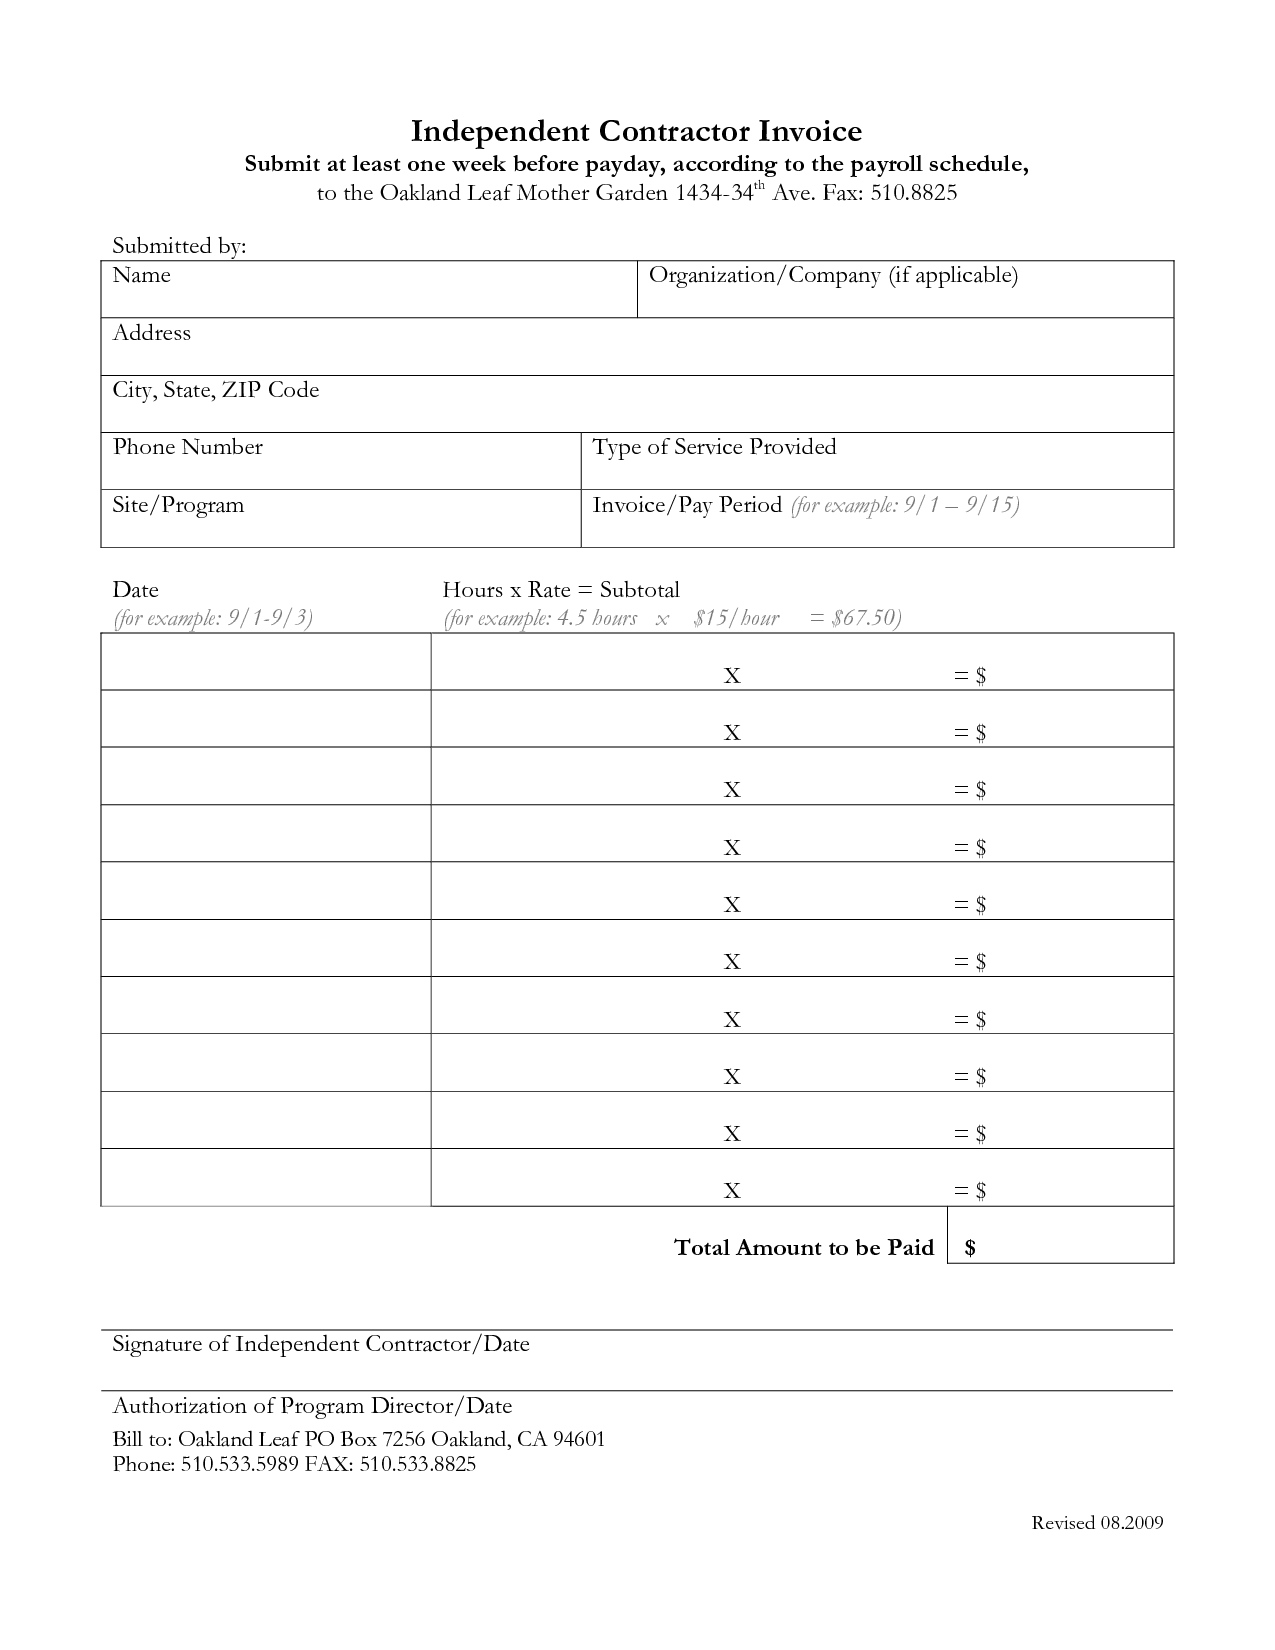 Independent Contractor Invoice Template Excel